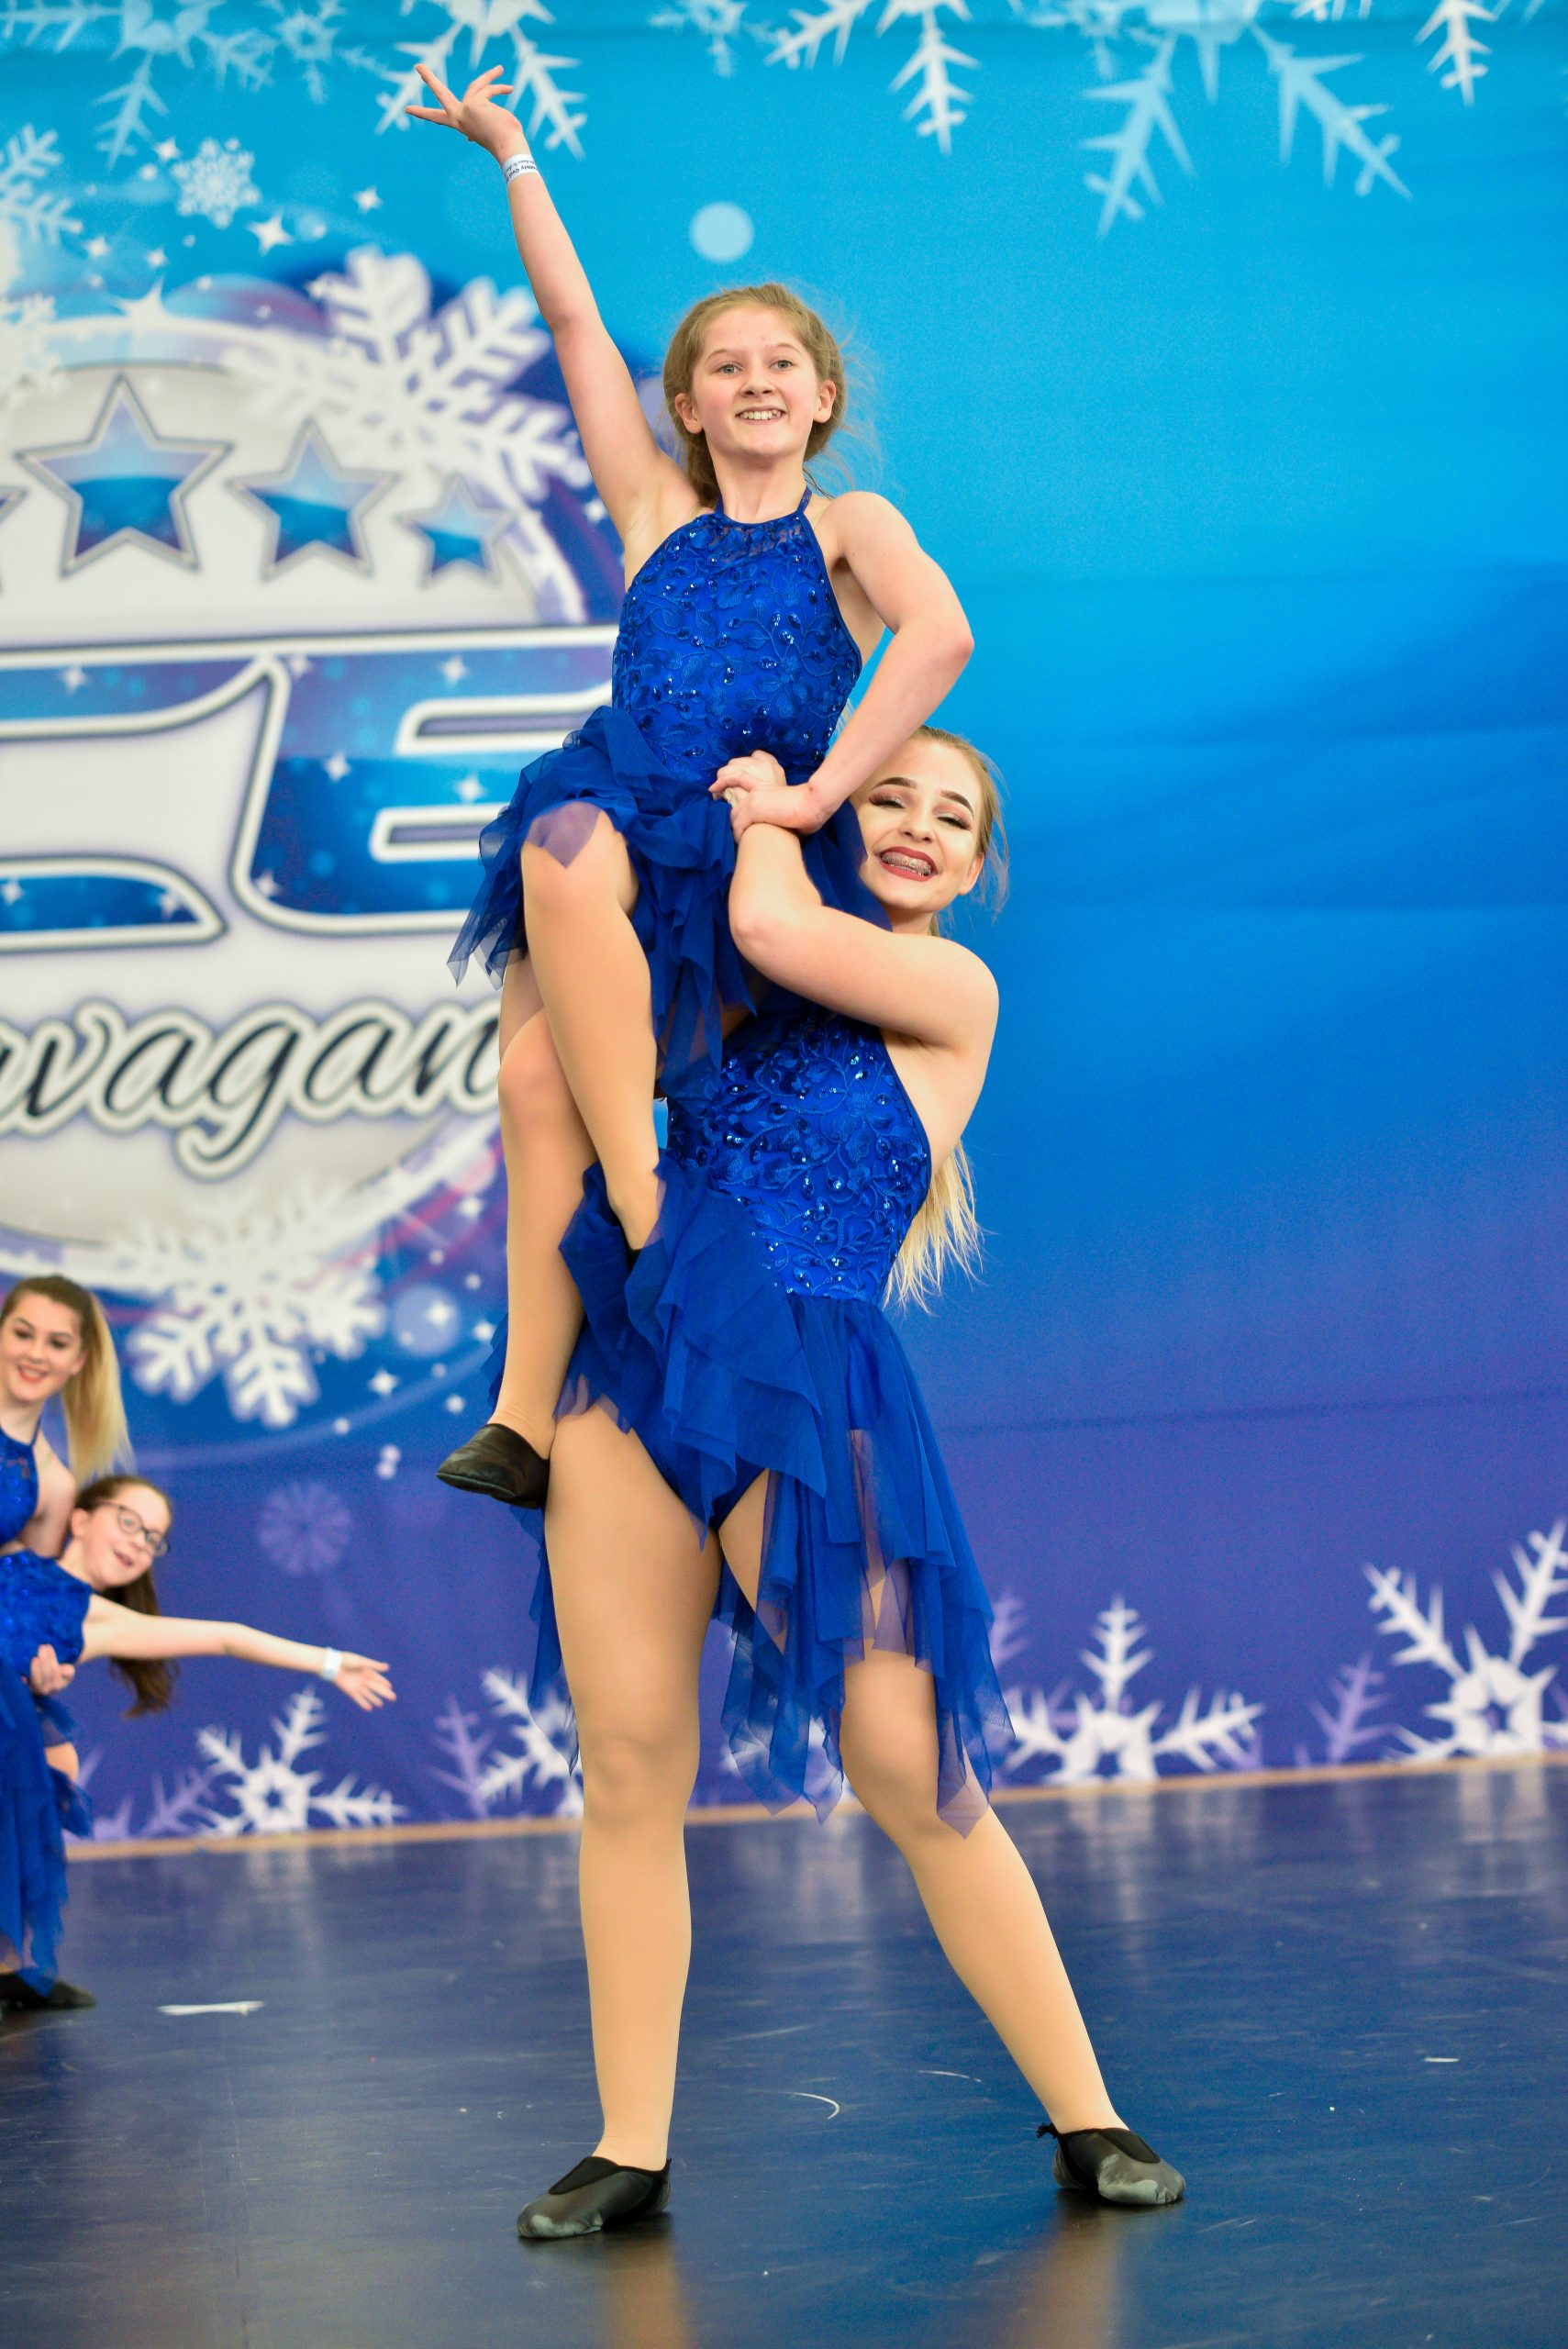 Dancers dressed in blue compete on a dance floor at ICE